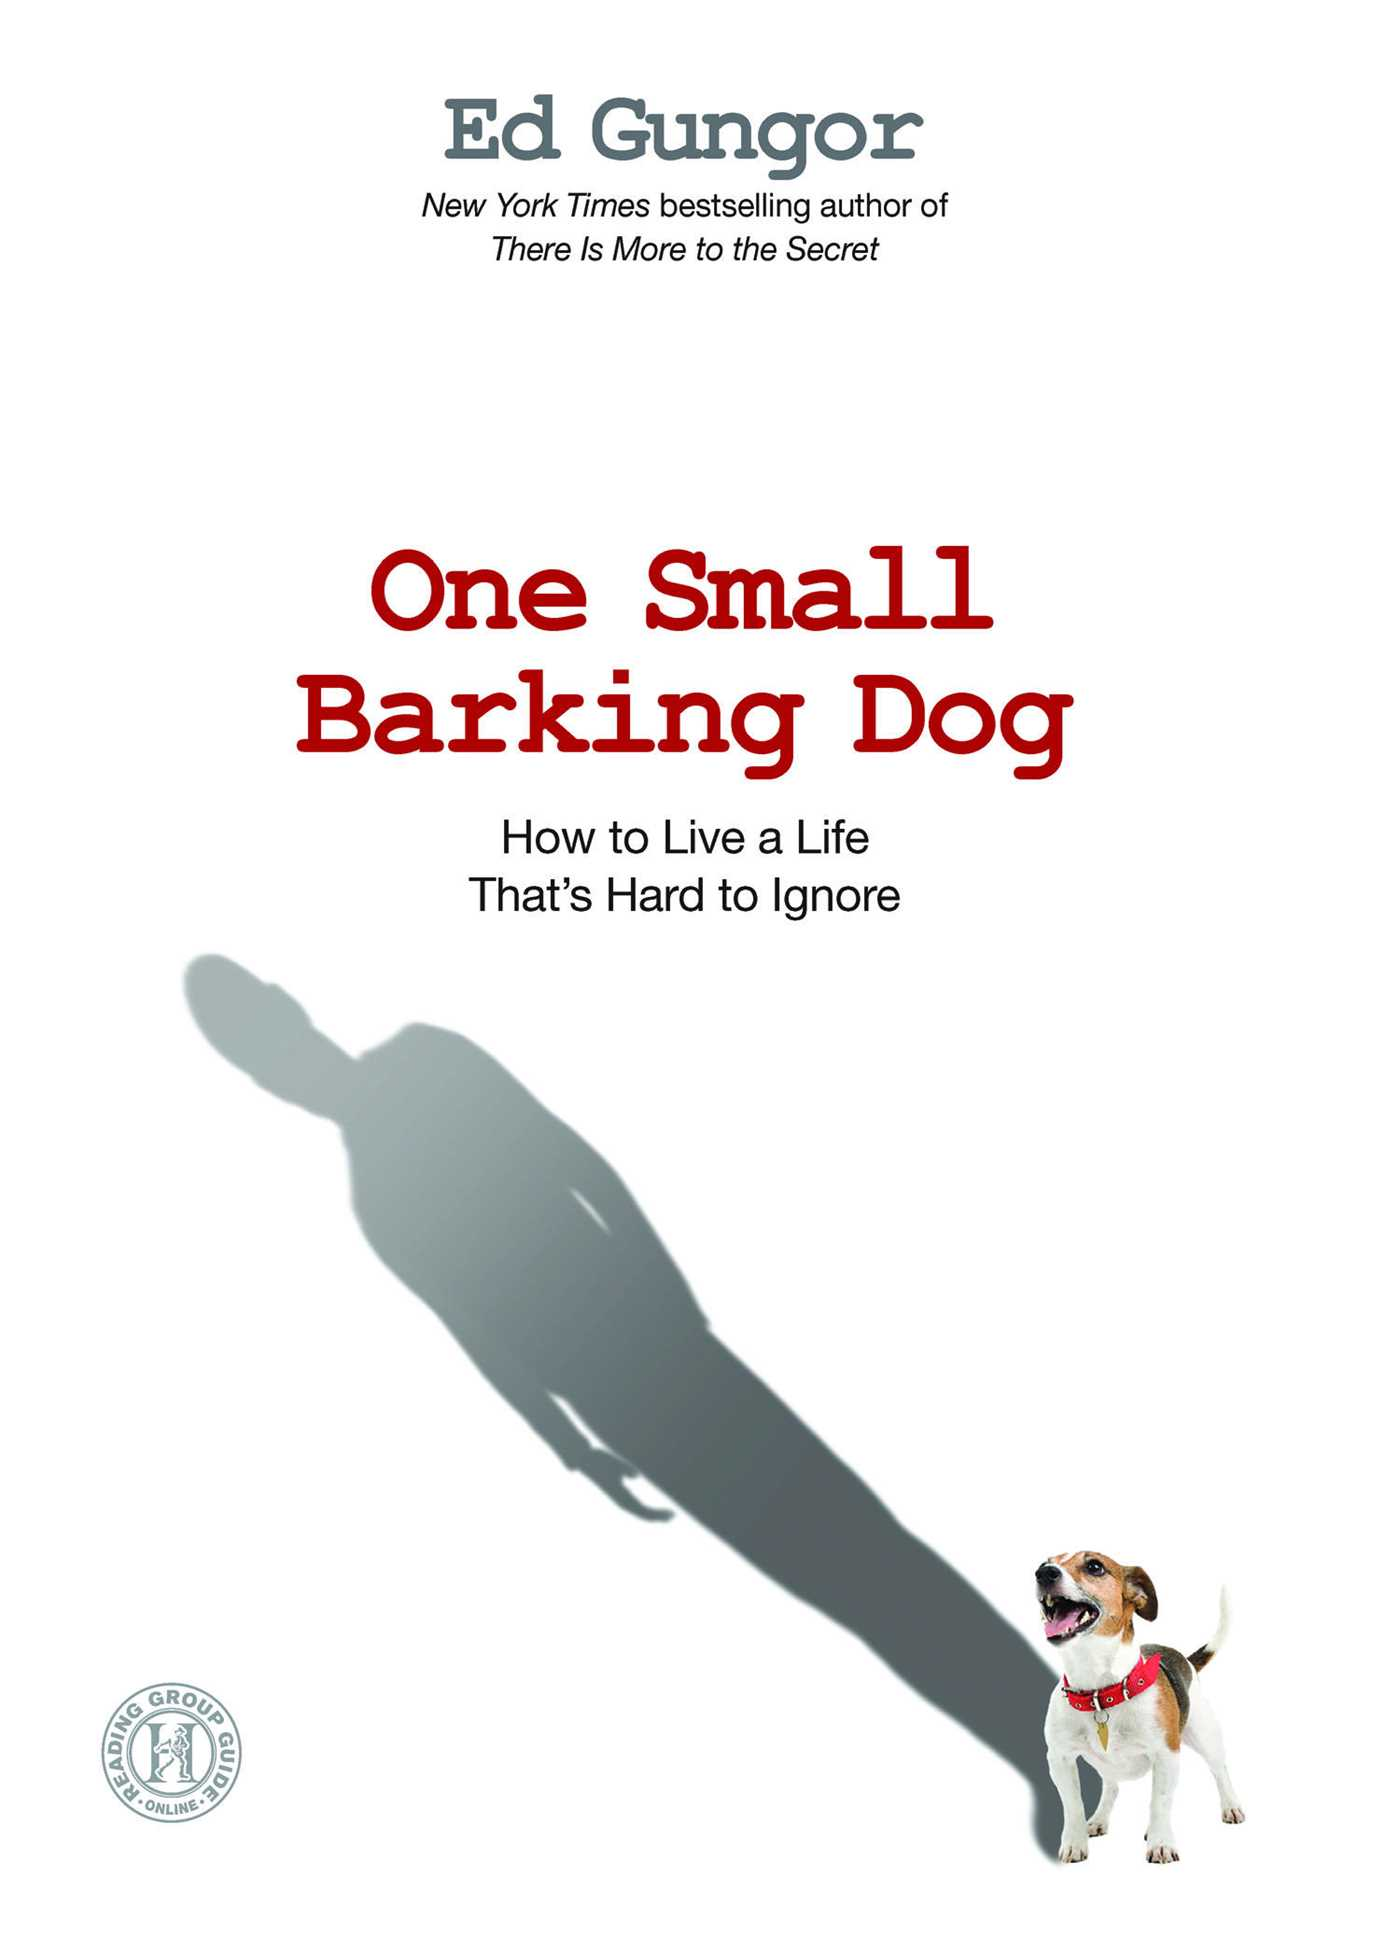 One-small-barking-dog-9781439172766_hr